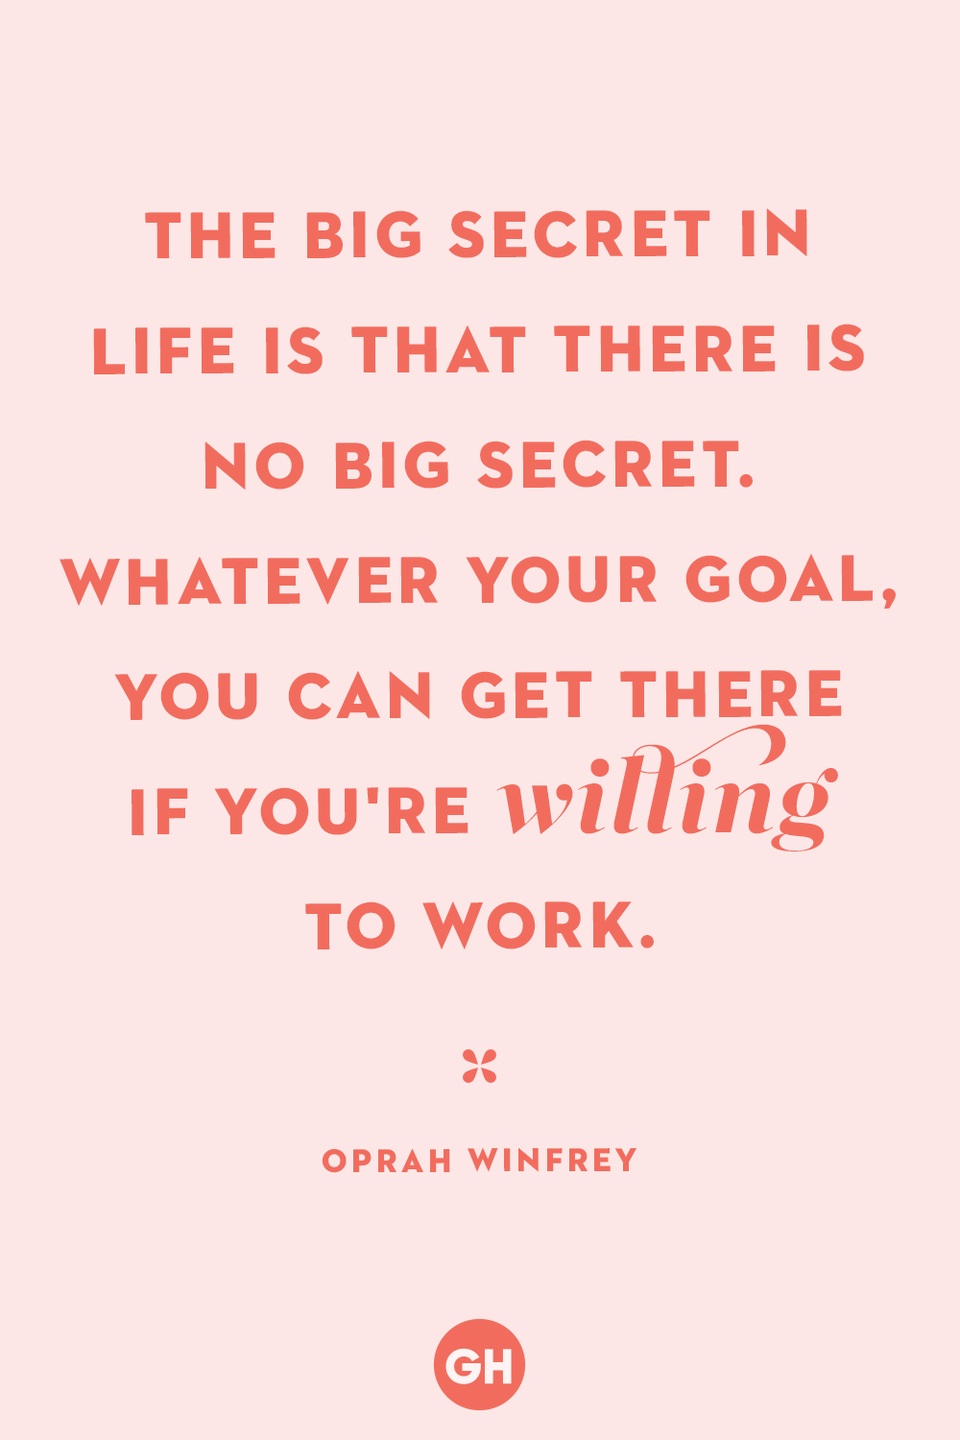 <p>The big secret in life is that there is no big secret. Whatever your goal, you can get there if you're willing to work.</p>